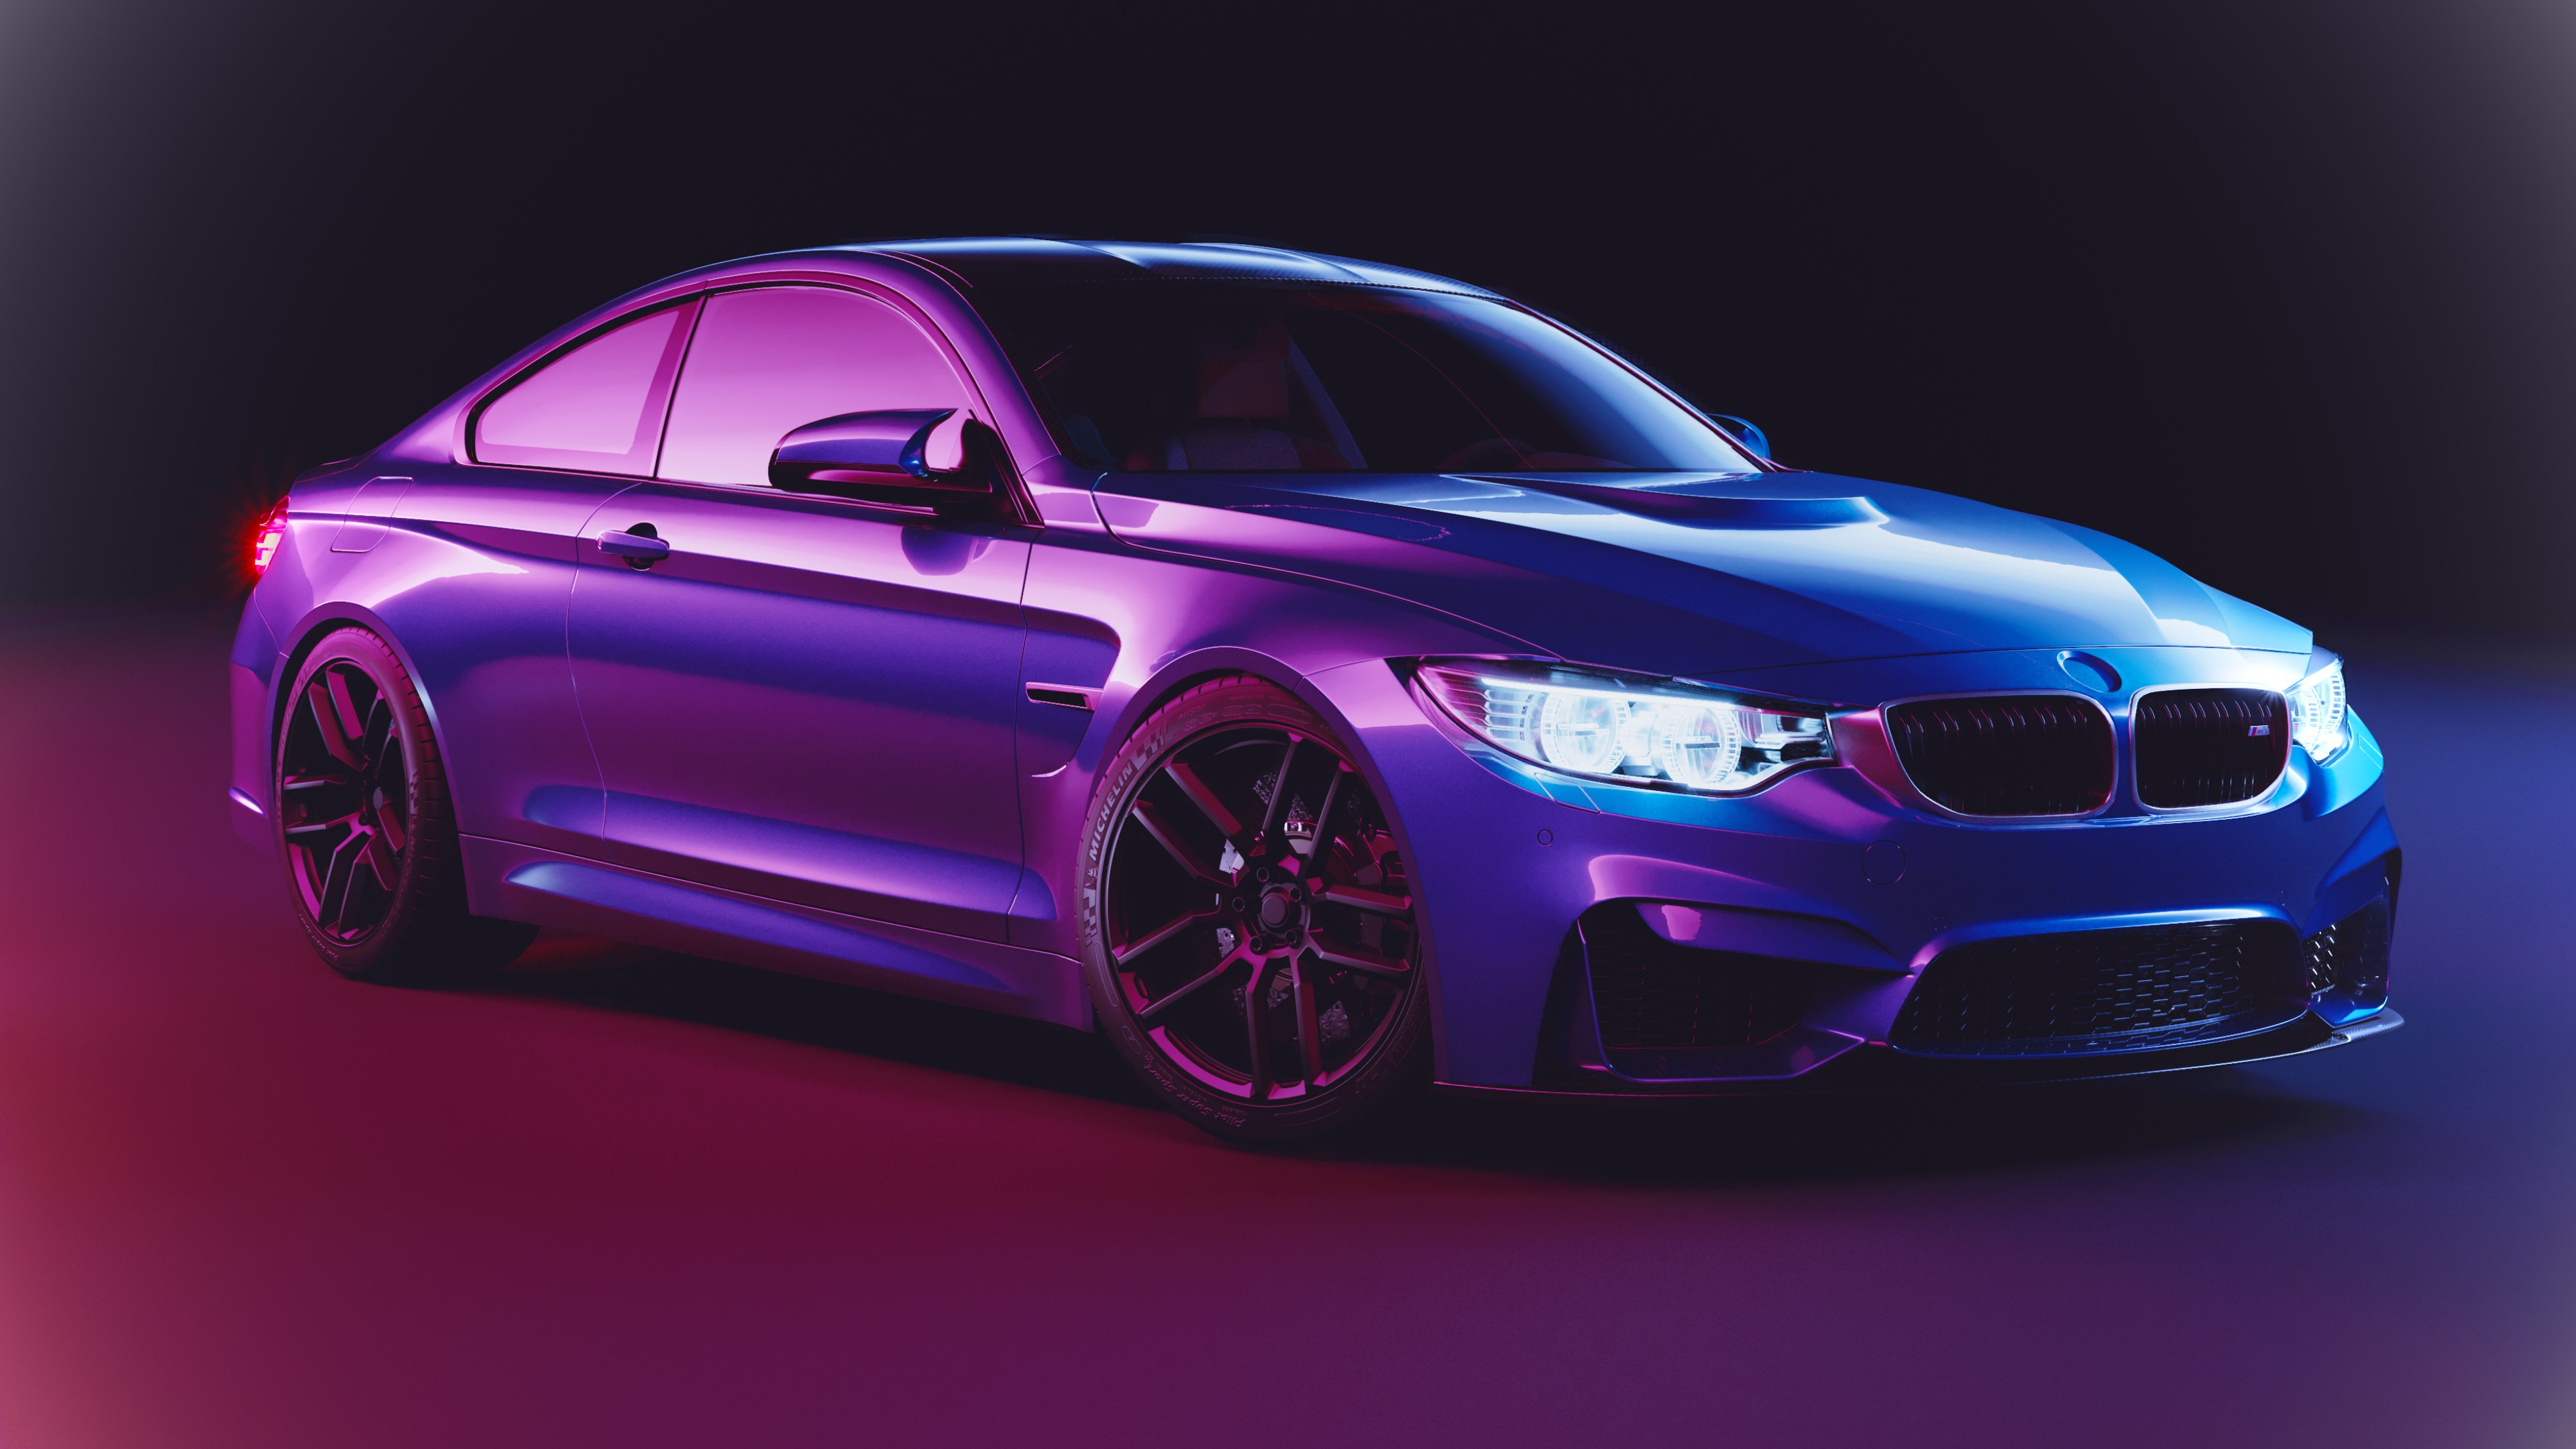 Tag For Bmw 720x1280 Bmw M4 On Road Luxurious Car Wallpaper Wallpapers Wallpapers Hd Desktop And Mobile Backgrounds Gts Uhd 4k Pixelz Cityconnectapps